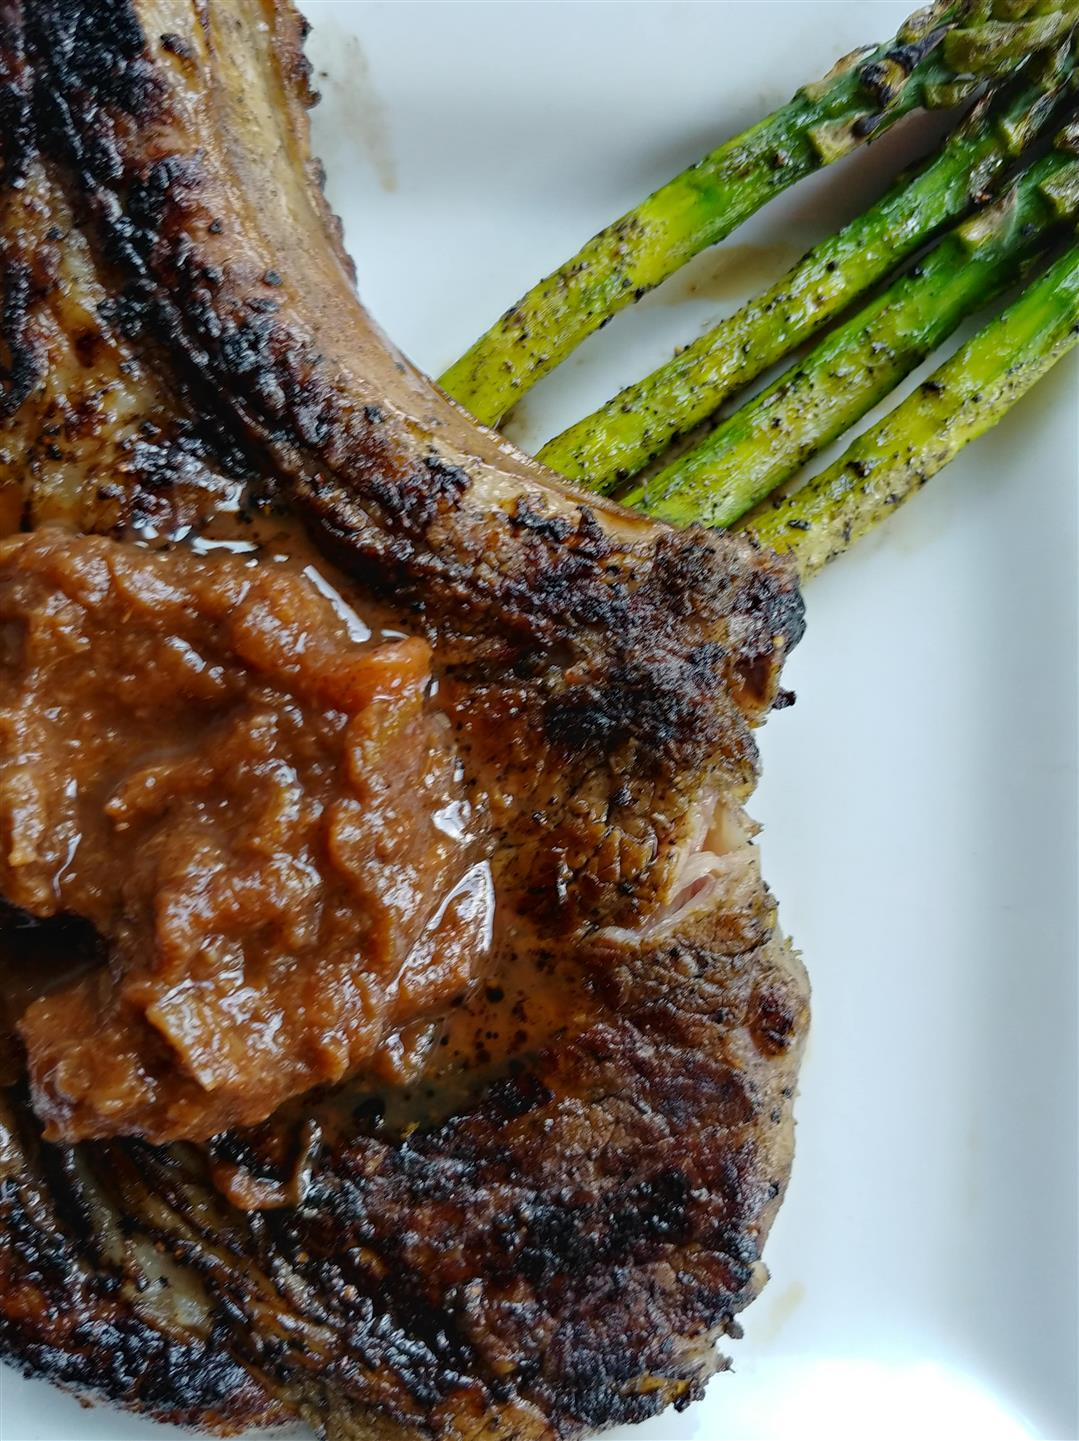 Grilled steak with a side of grilled asparagus